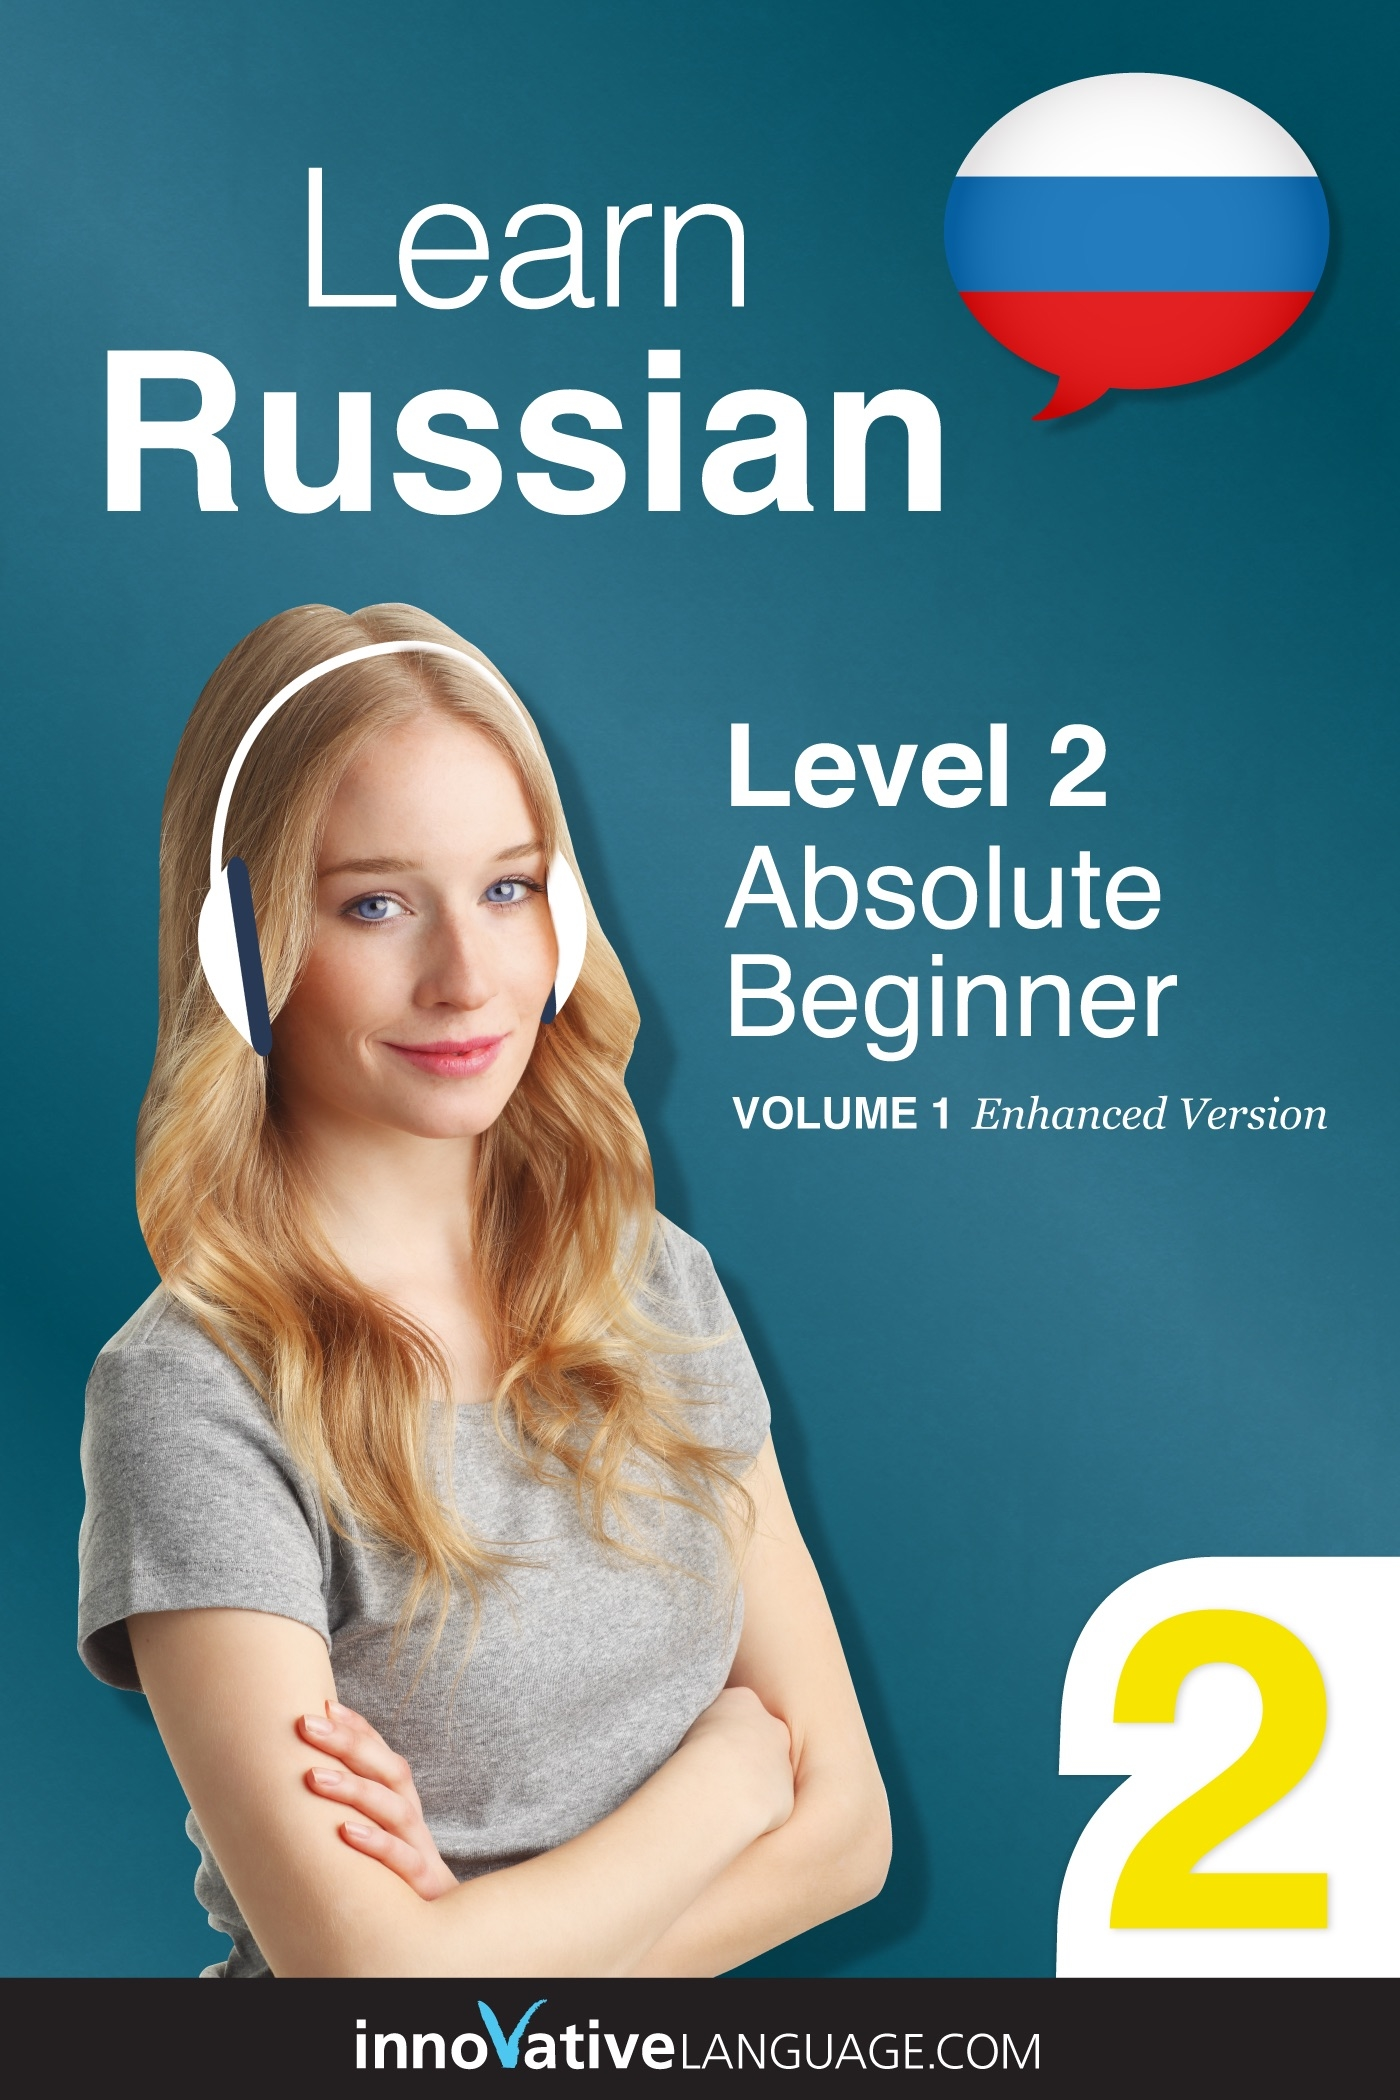 [eBook] Learn Russian - Level 2: Absolute Beginner